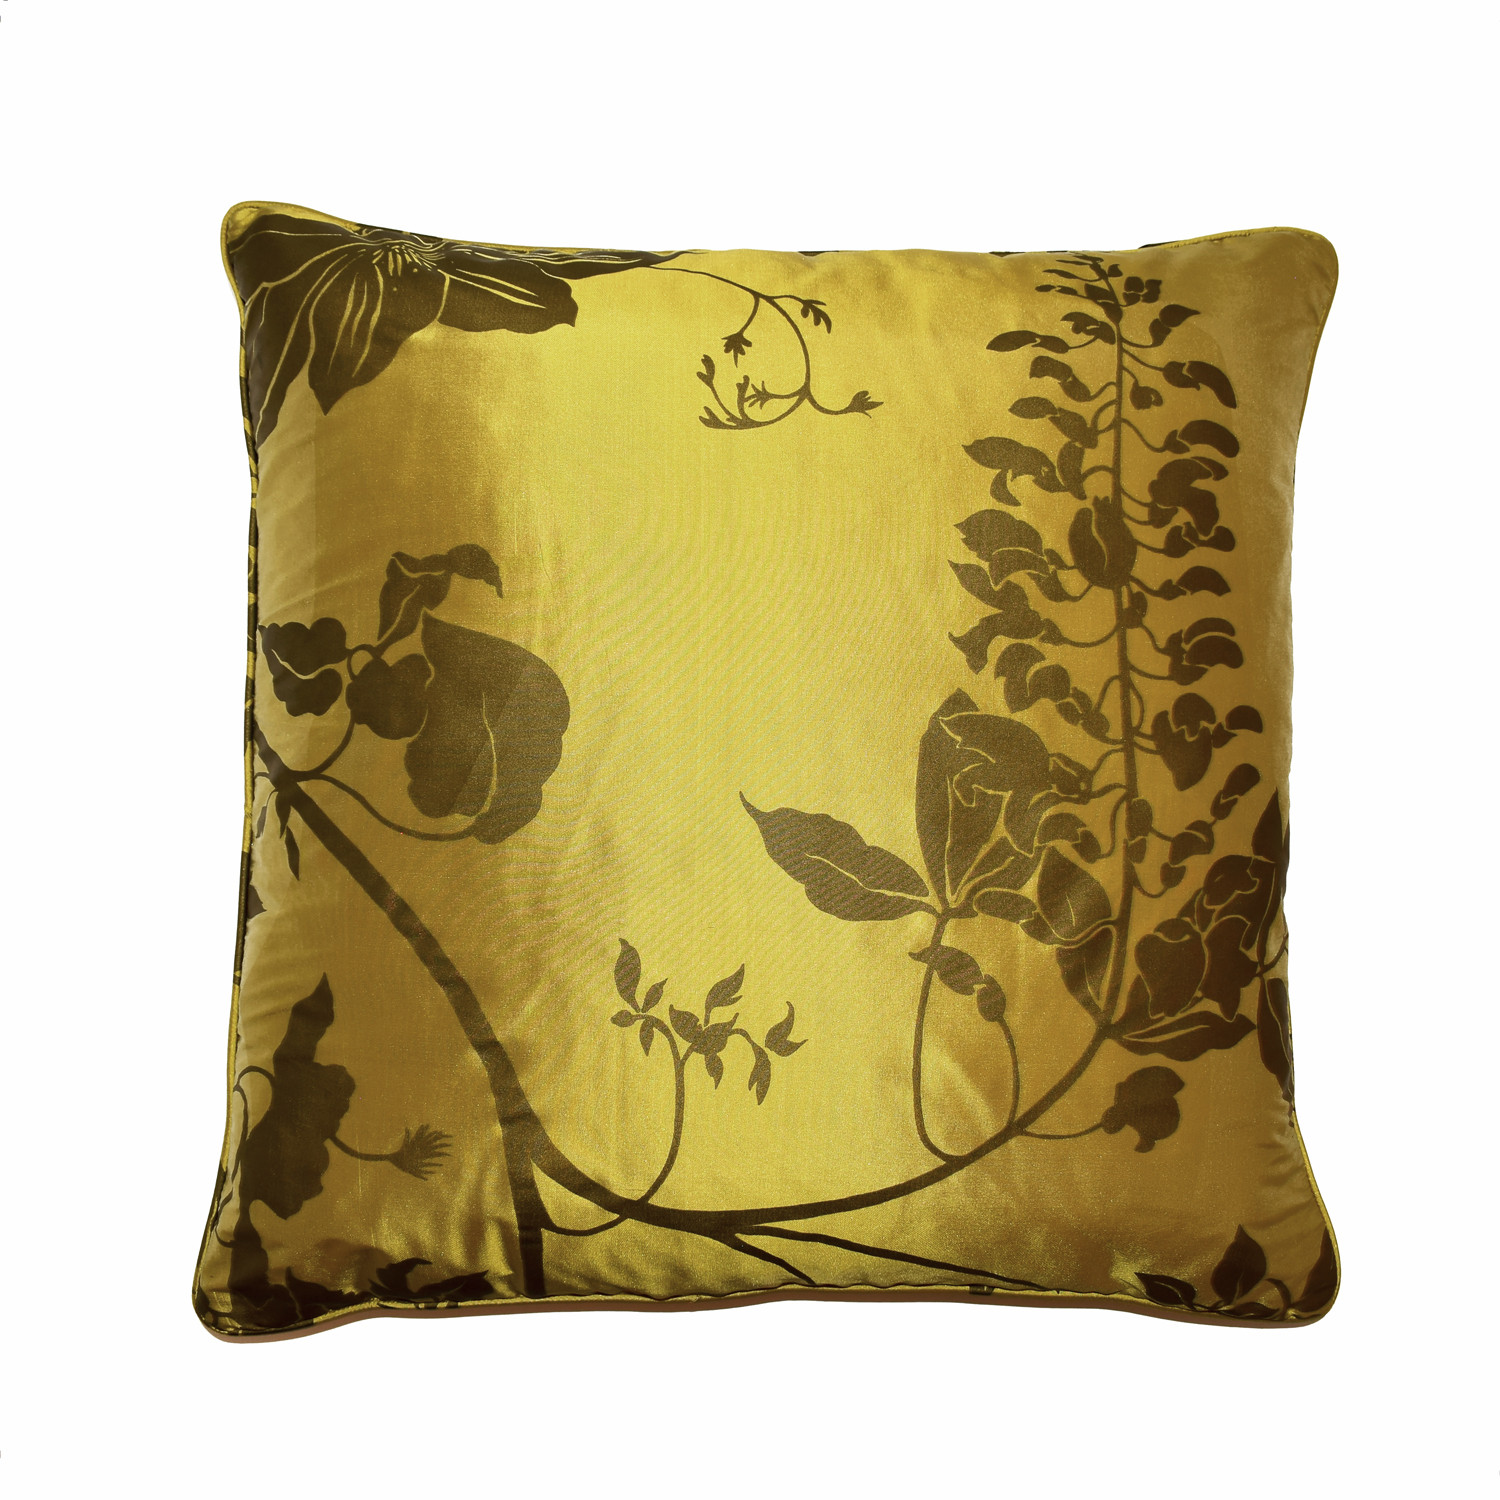 Cushion with floral pattern - 48x48 cm